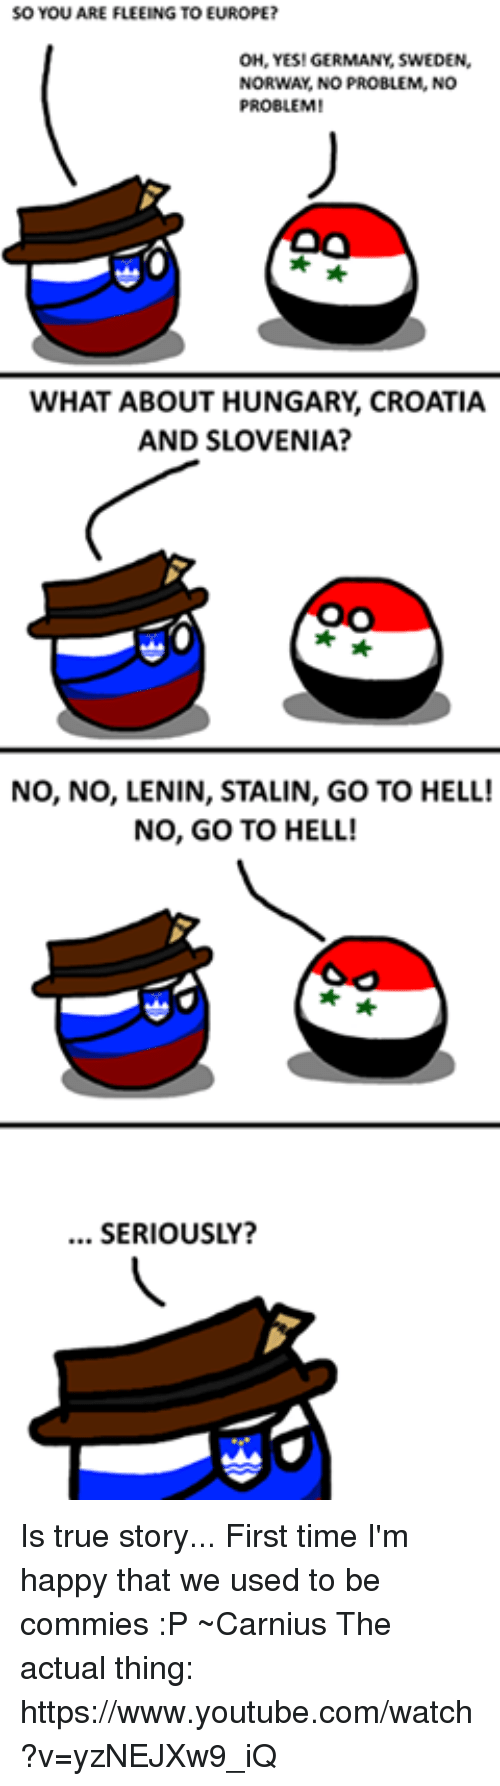 Stories First Time: SO YOU ARE FLEEING TO EUROPE?  OH, YES! GERMANY SWEDEN,  NORWAY, NO PROBLEM, NO  PROBLEM  WHAT ABOUT HUNGARY, CROATIA  AND SLOVENIA?  NO, NO, LENIN, STALIN, GO TO HELL!  NO, GO TO HELL!  SERIOUSLY? Is true story... First time I'm happy that we used to be commies :P ~Carnius  The actual thing: https://www.youtube.com/watch?v=yzNEJXw9_iQ